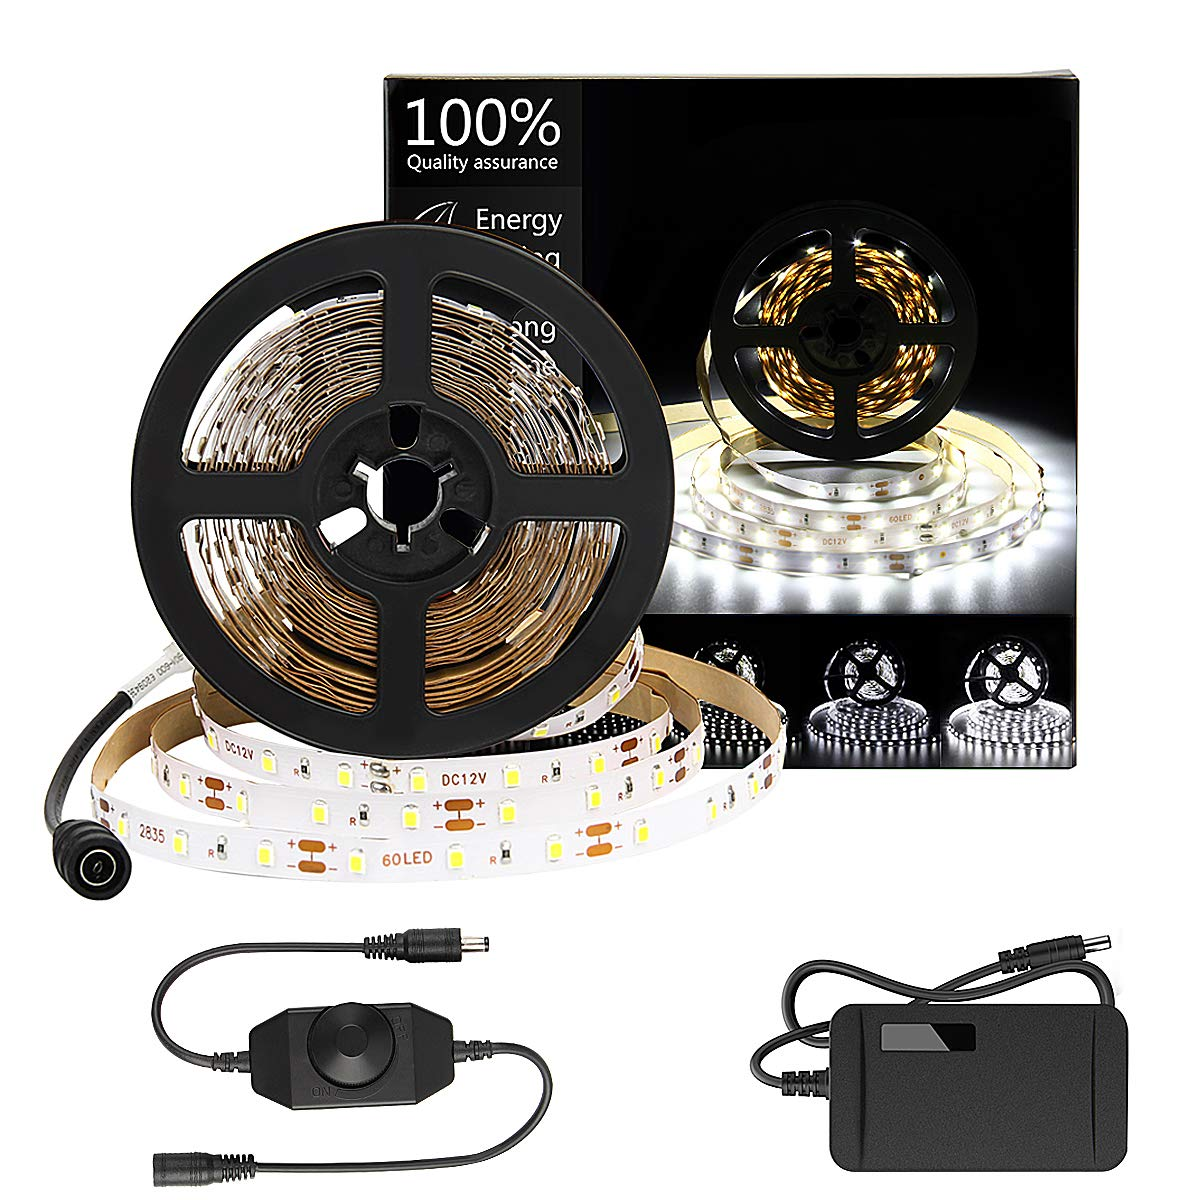 HOMELYLIFE Daylight White LED Strip Lights Kit 6500K Super Brightness Dimmable 300 SMD2835 LEDs 16.4FT Non Waterproof 12v LED Light Strip LED Ribbon for Room Vanity Mirror DIY Decoration